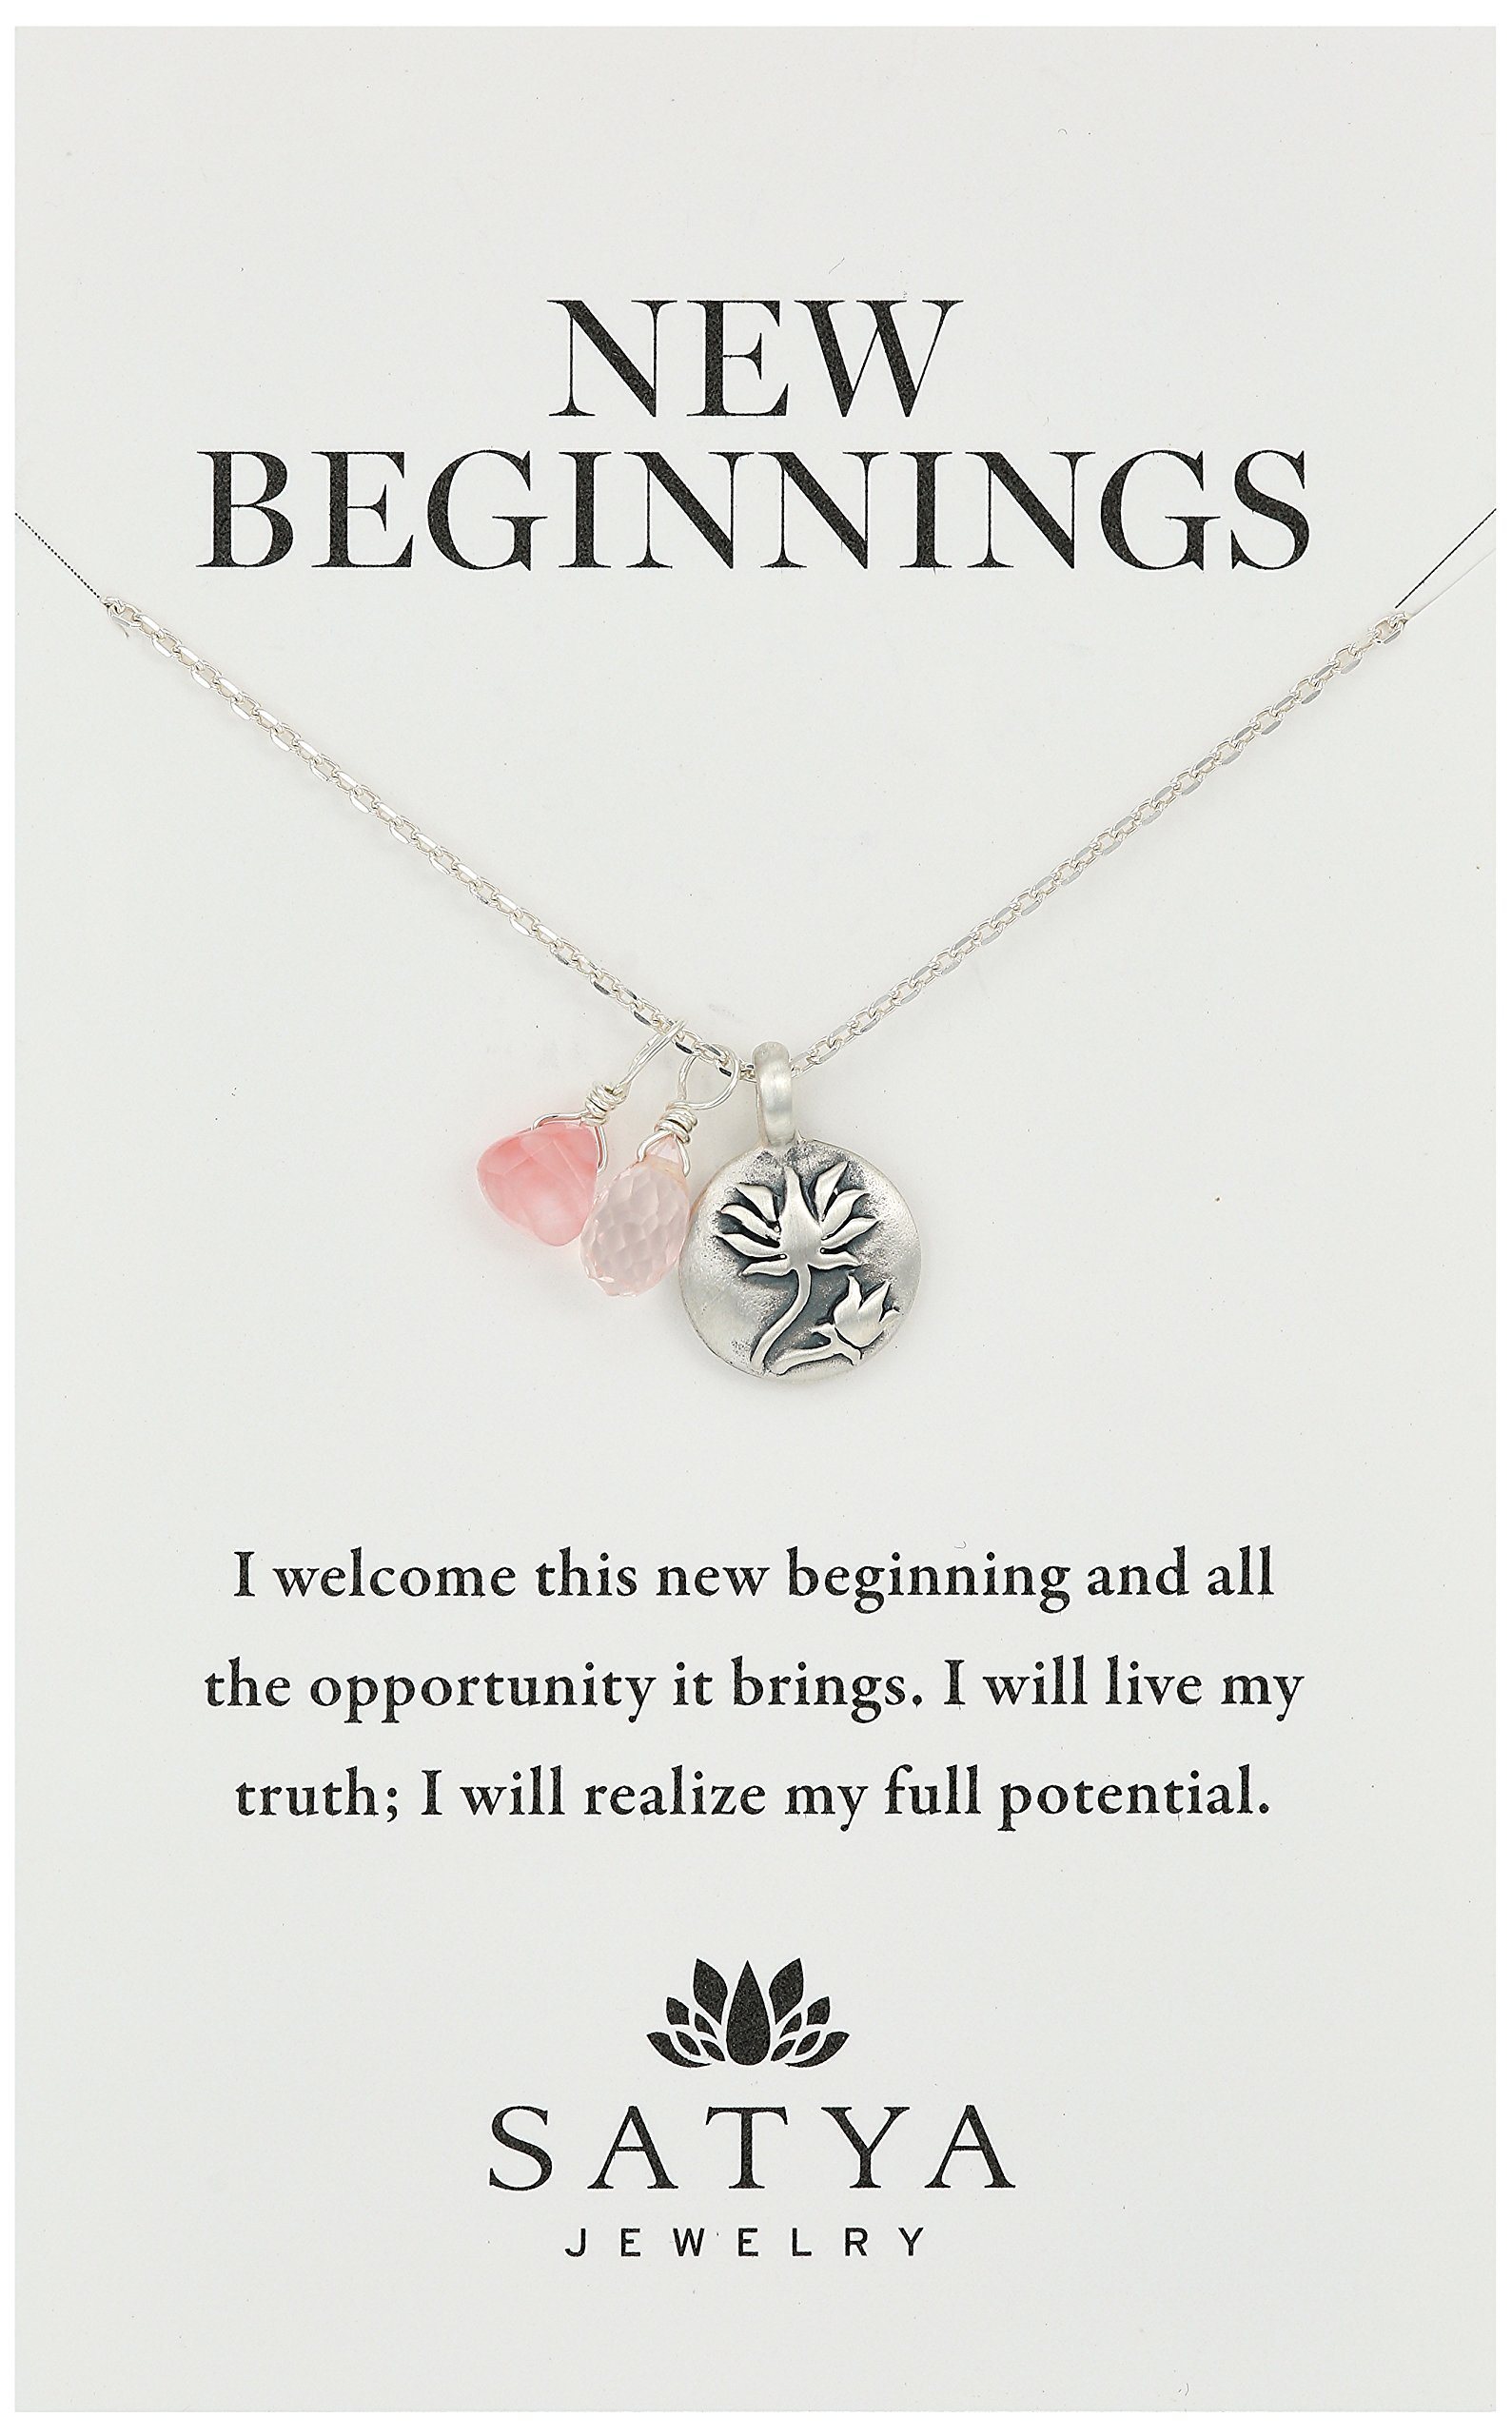 Satya Jewelry Sterling Silver Rose Quartz Lotus Charm Necklace (18-Inch), 18'' by Satya Jewelry (Image #1)